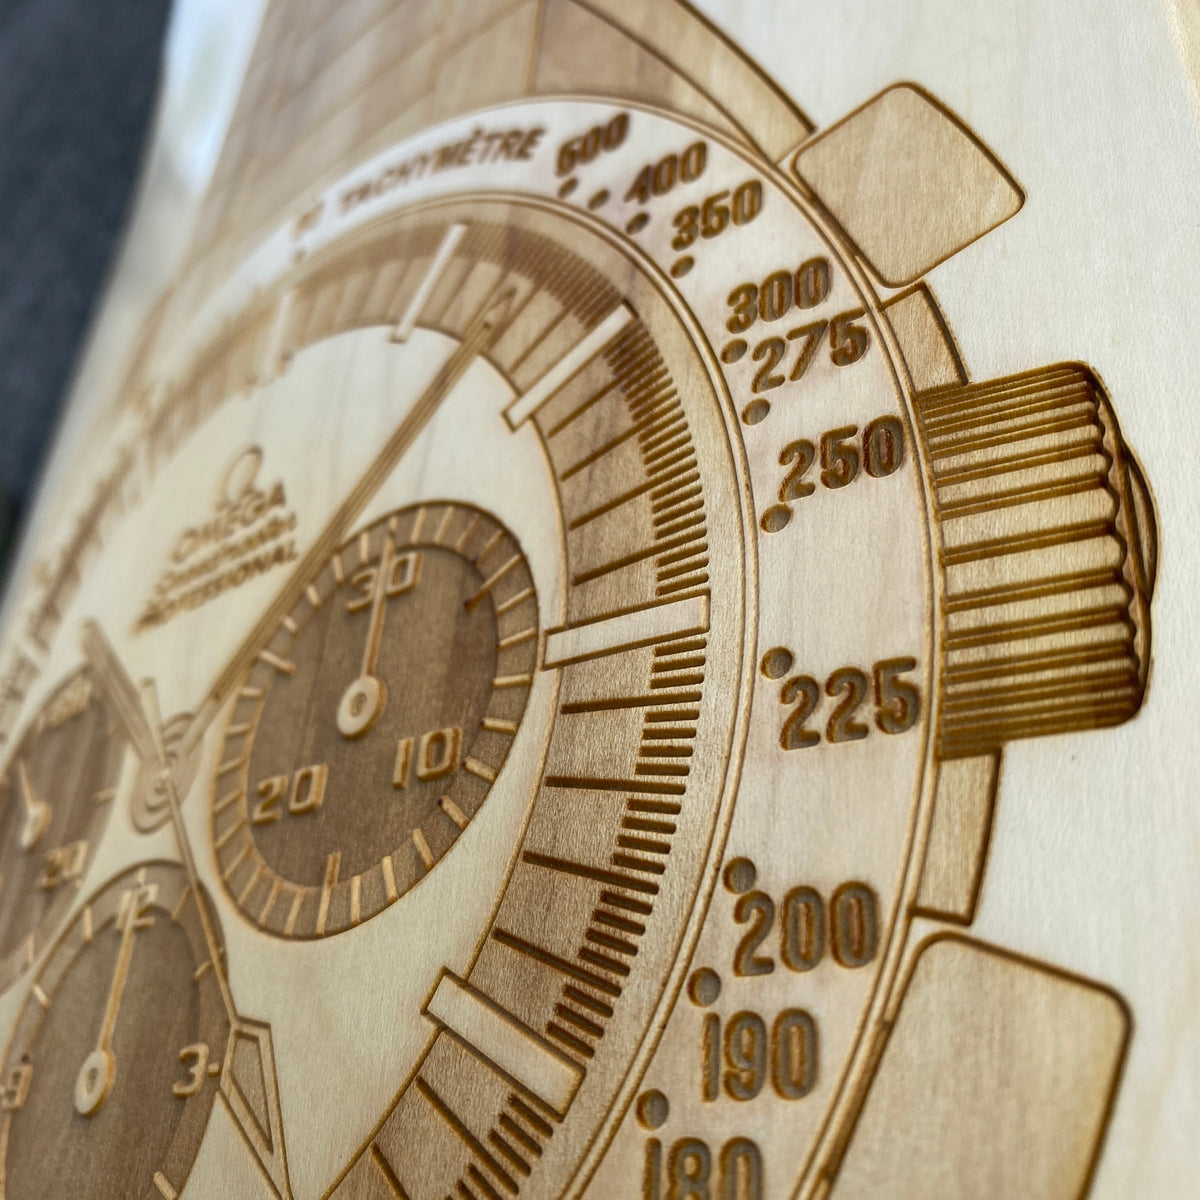 Omega Speedmaster Skateboard Deck Wall Art - Lugcraft Inc